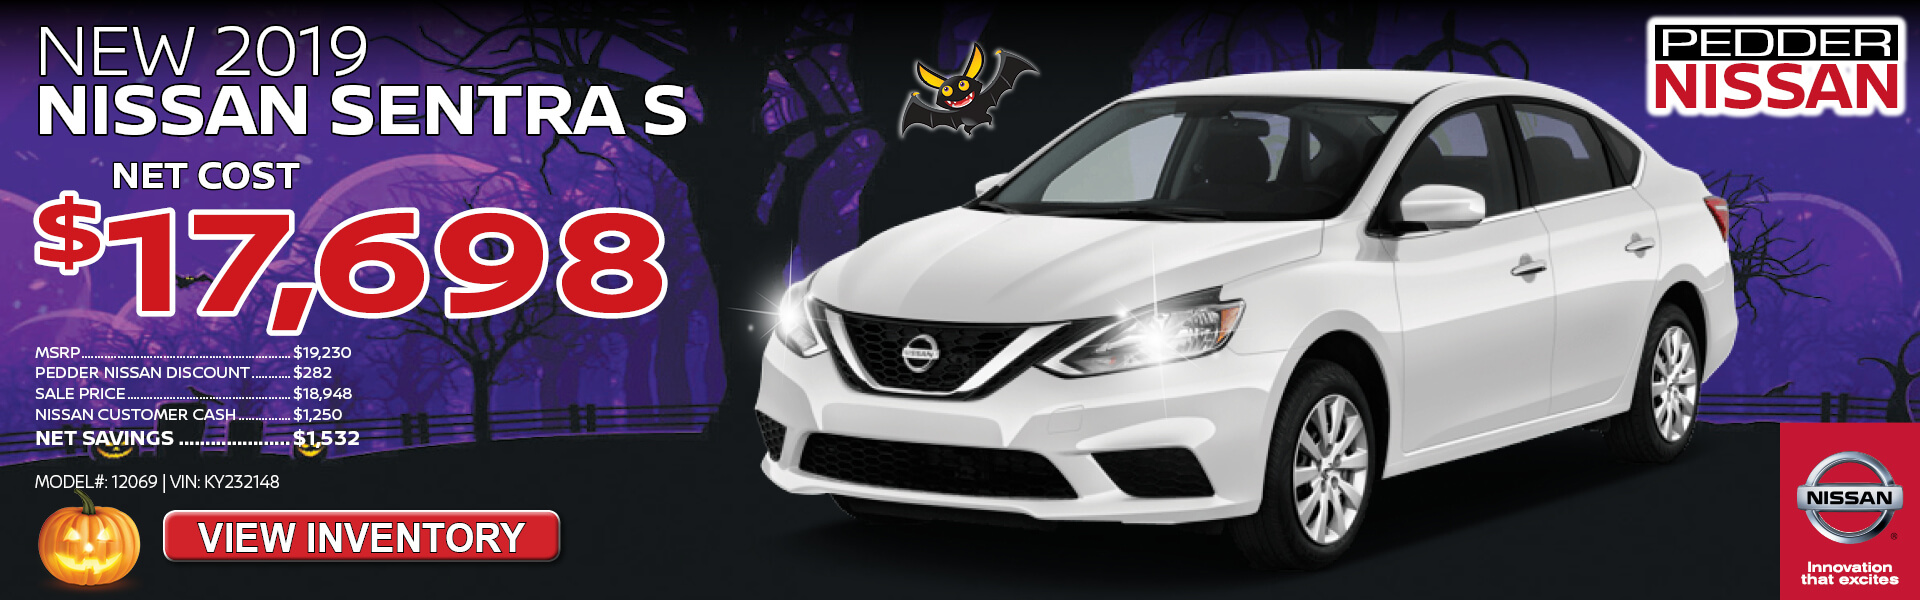 Nissan Sentra $17,698 Purchase